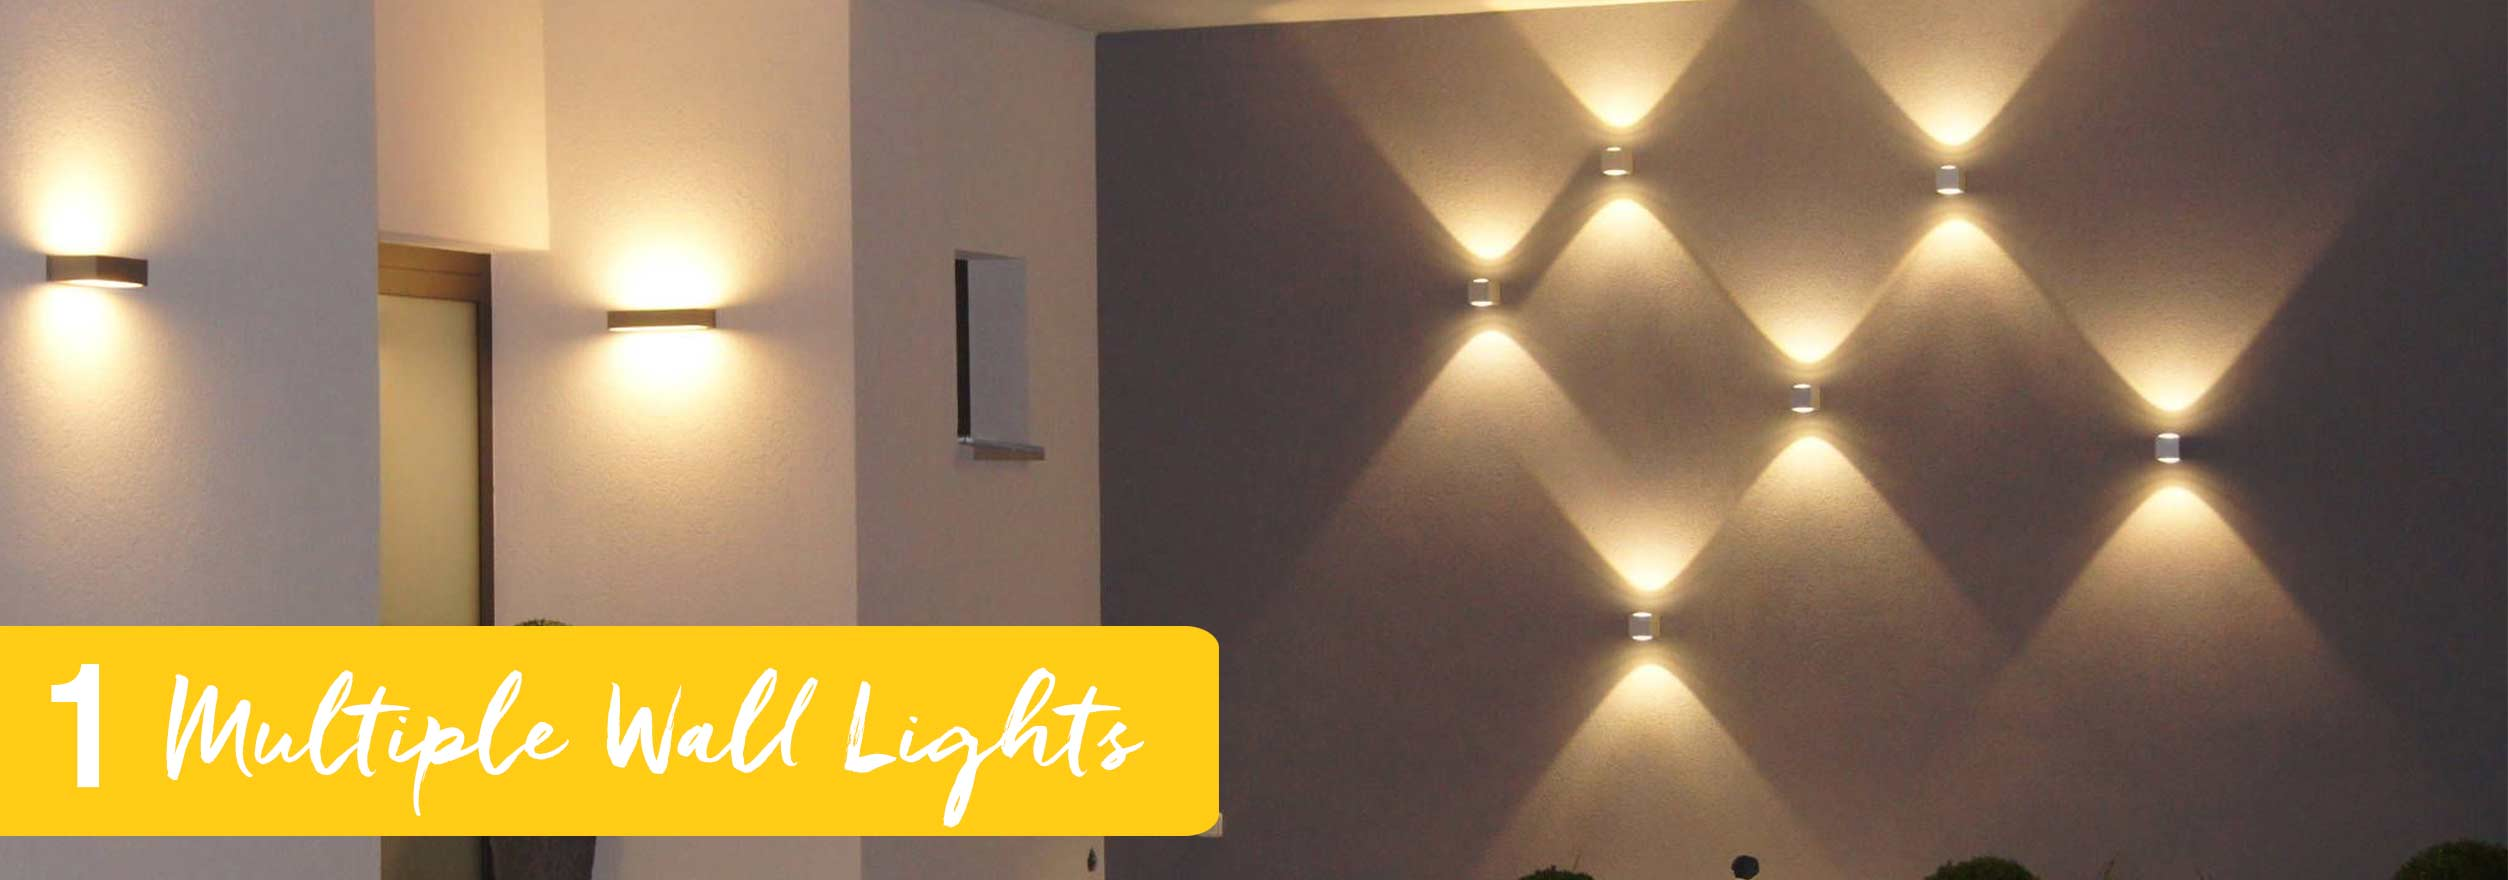 medium resolution of install multiple wall lights sometimes more is better and with multiple wall lights installed facing different directions you get ample lighting and an